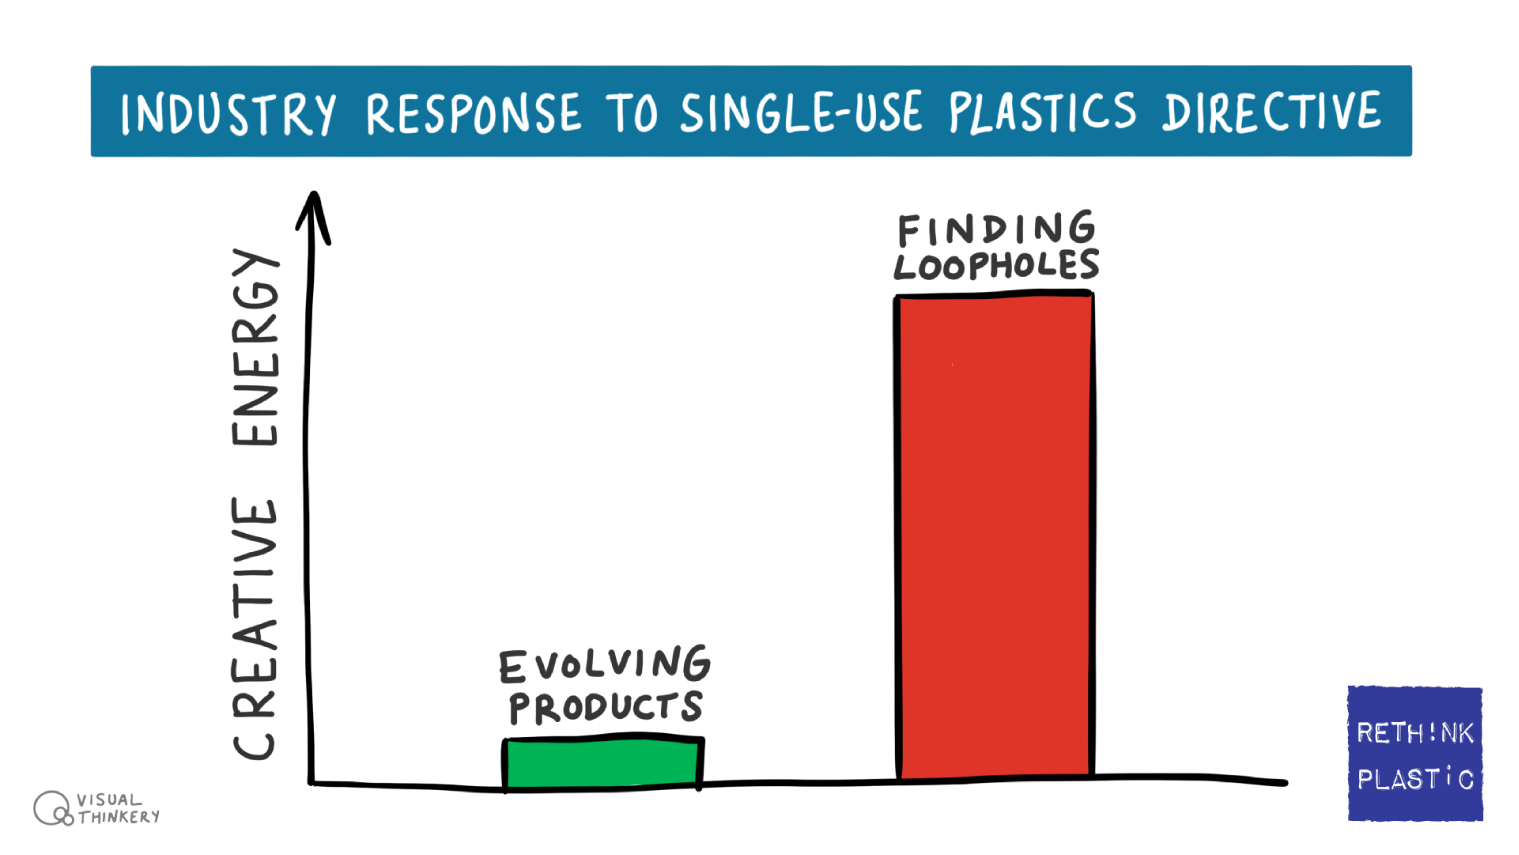 Rethink Plastic - Industry response to SUP directive